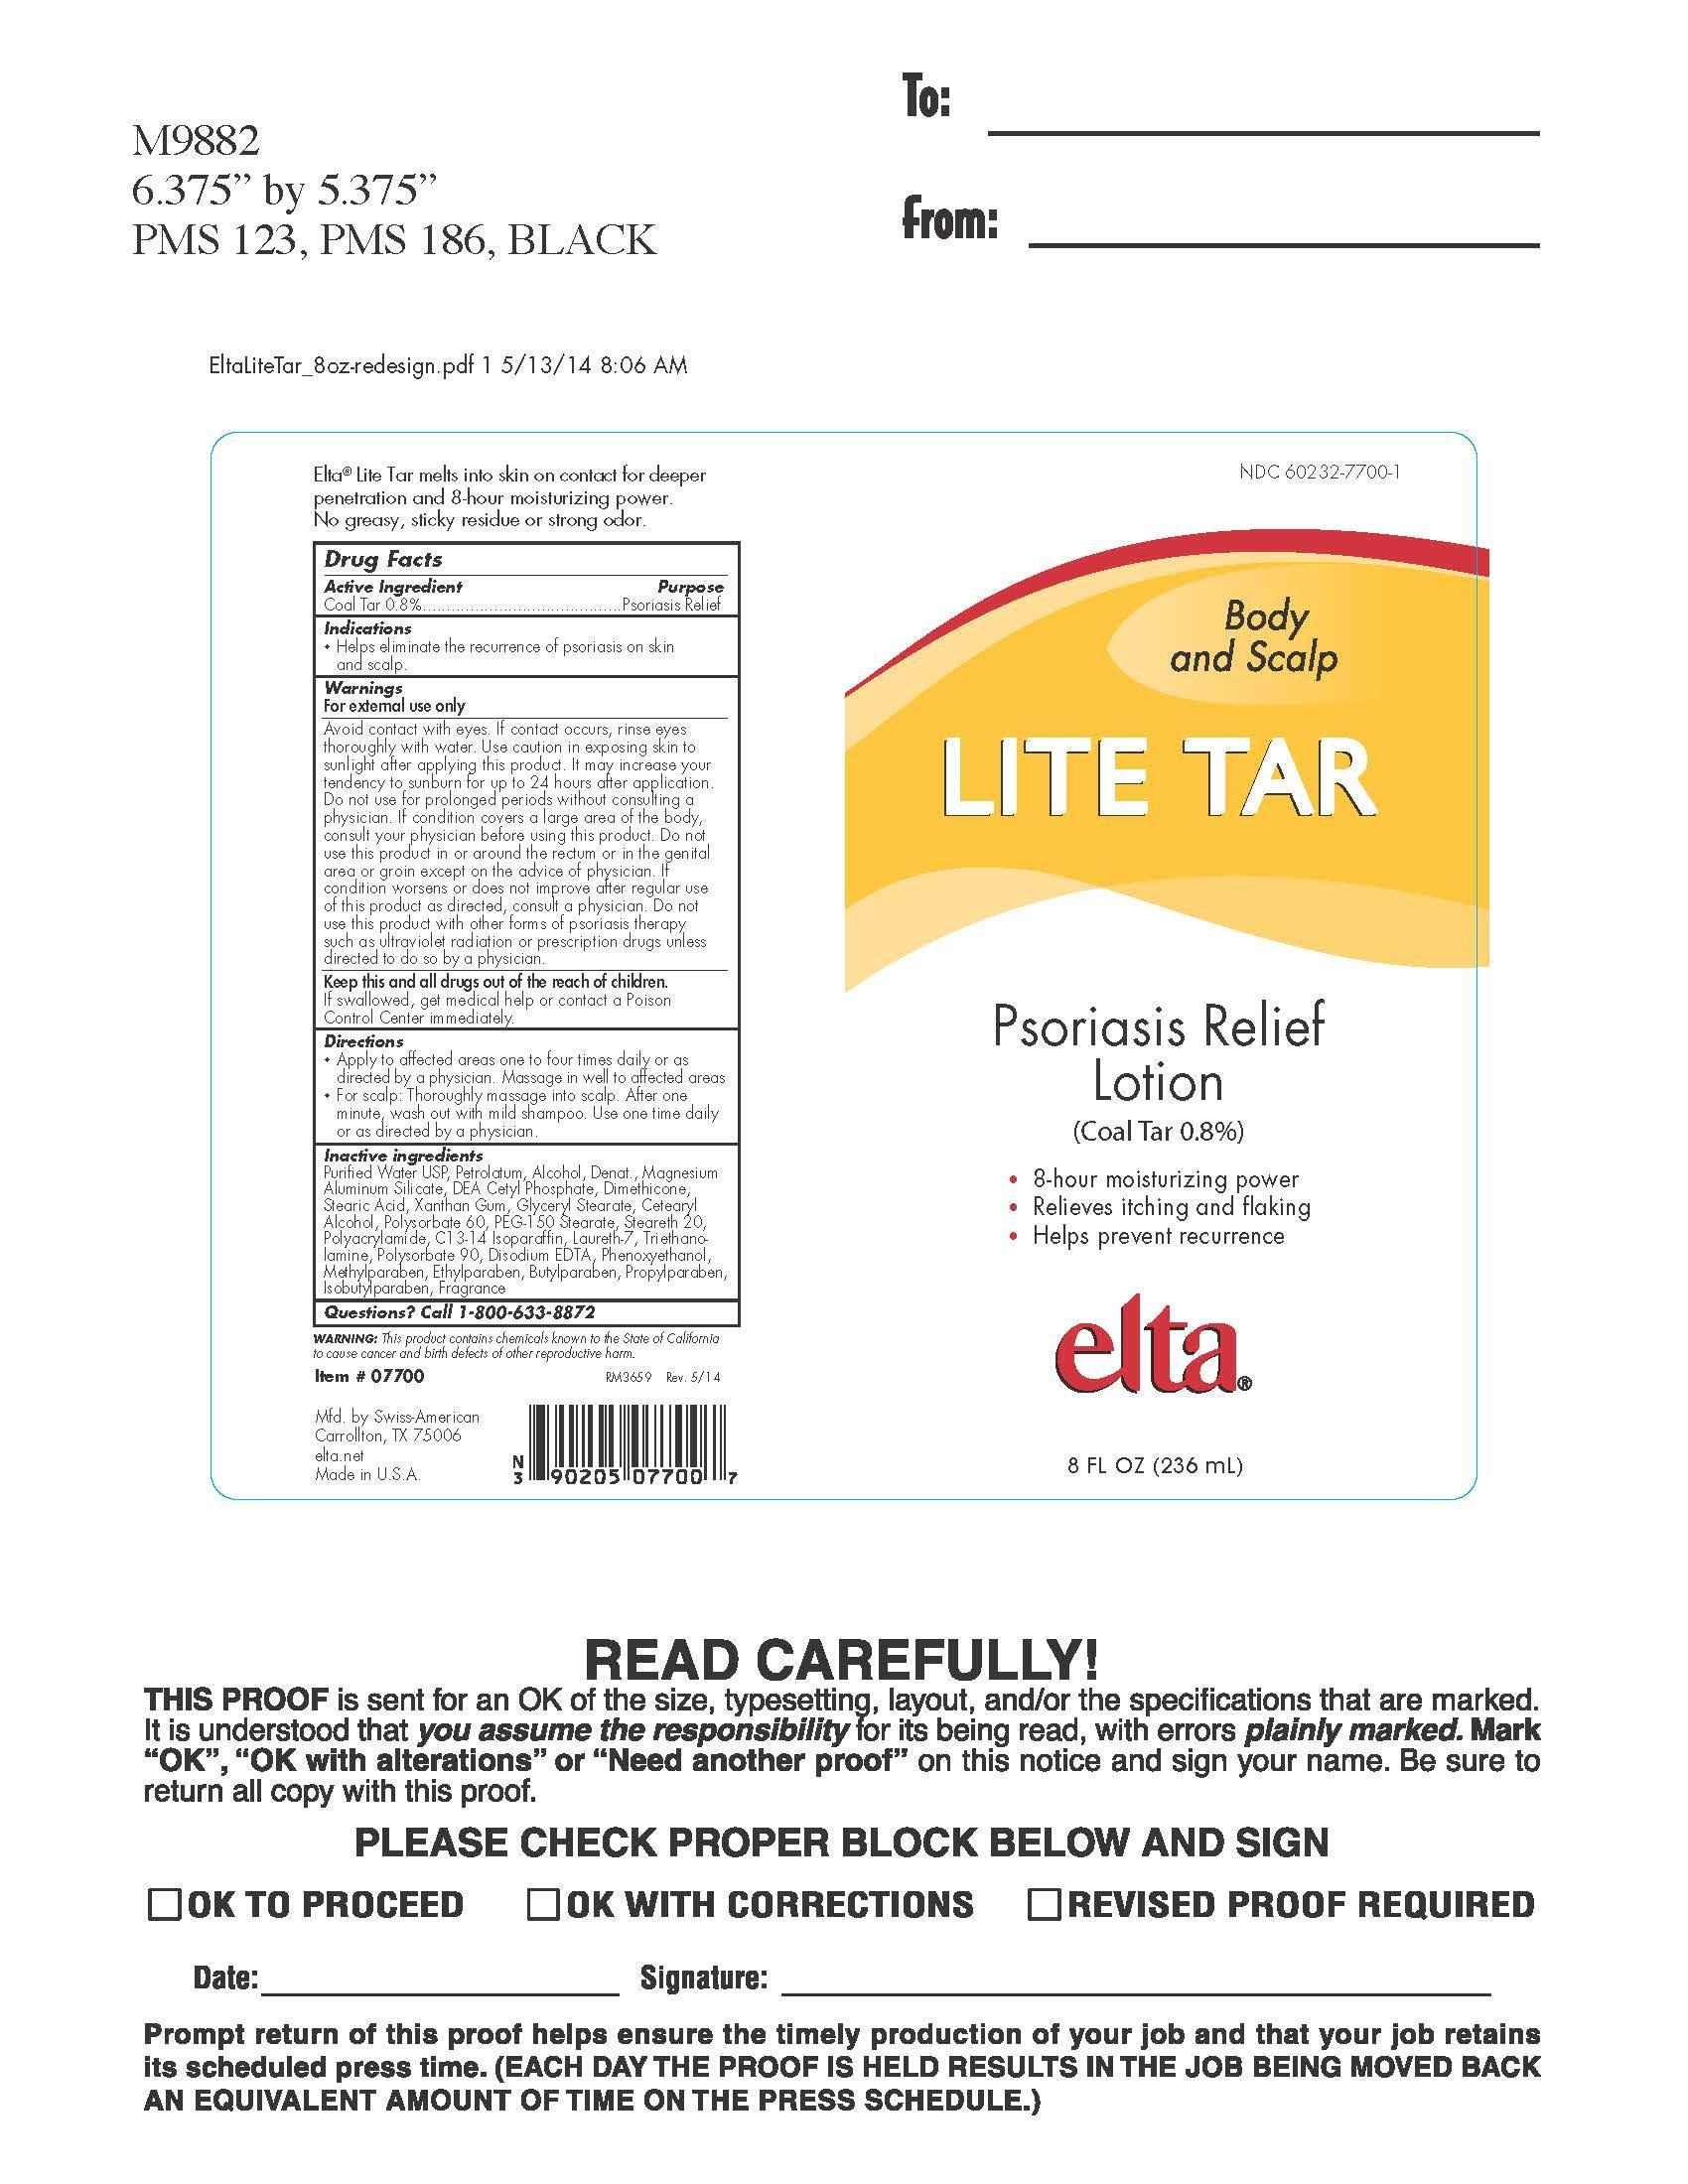 how to use coal tar topical solution